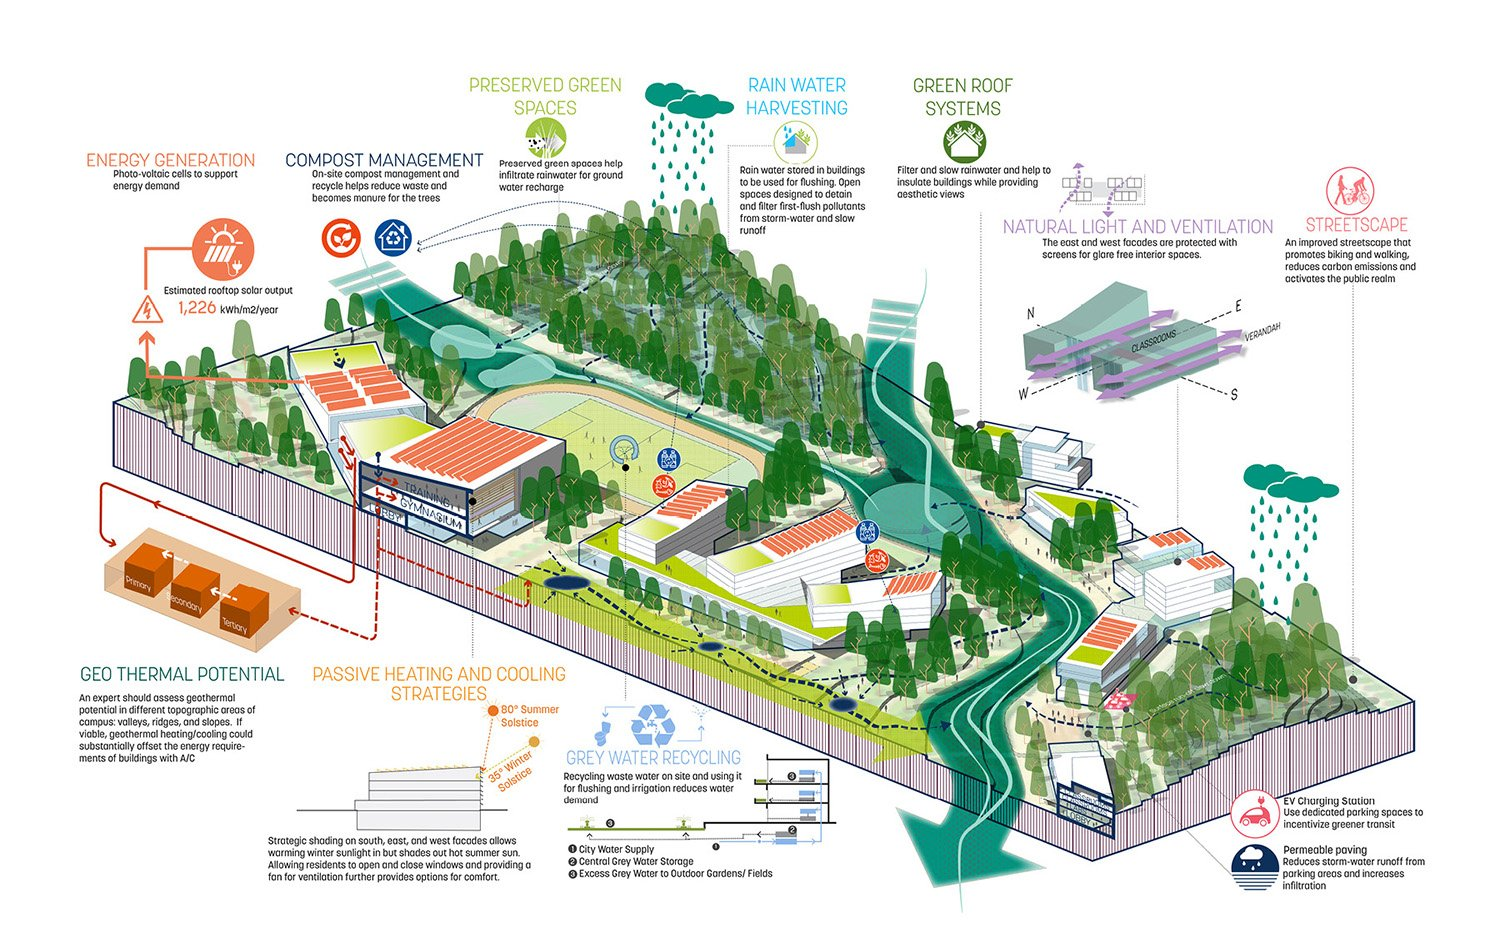 The masterplan provides a wide array of sustainability strategies ranging from energy saving, waste management, topsoil conversation, to geothermal and stormwater management. SASAKI}